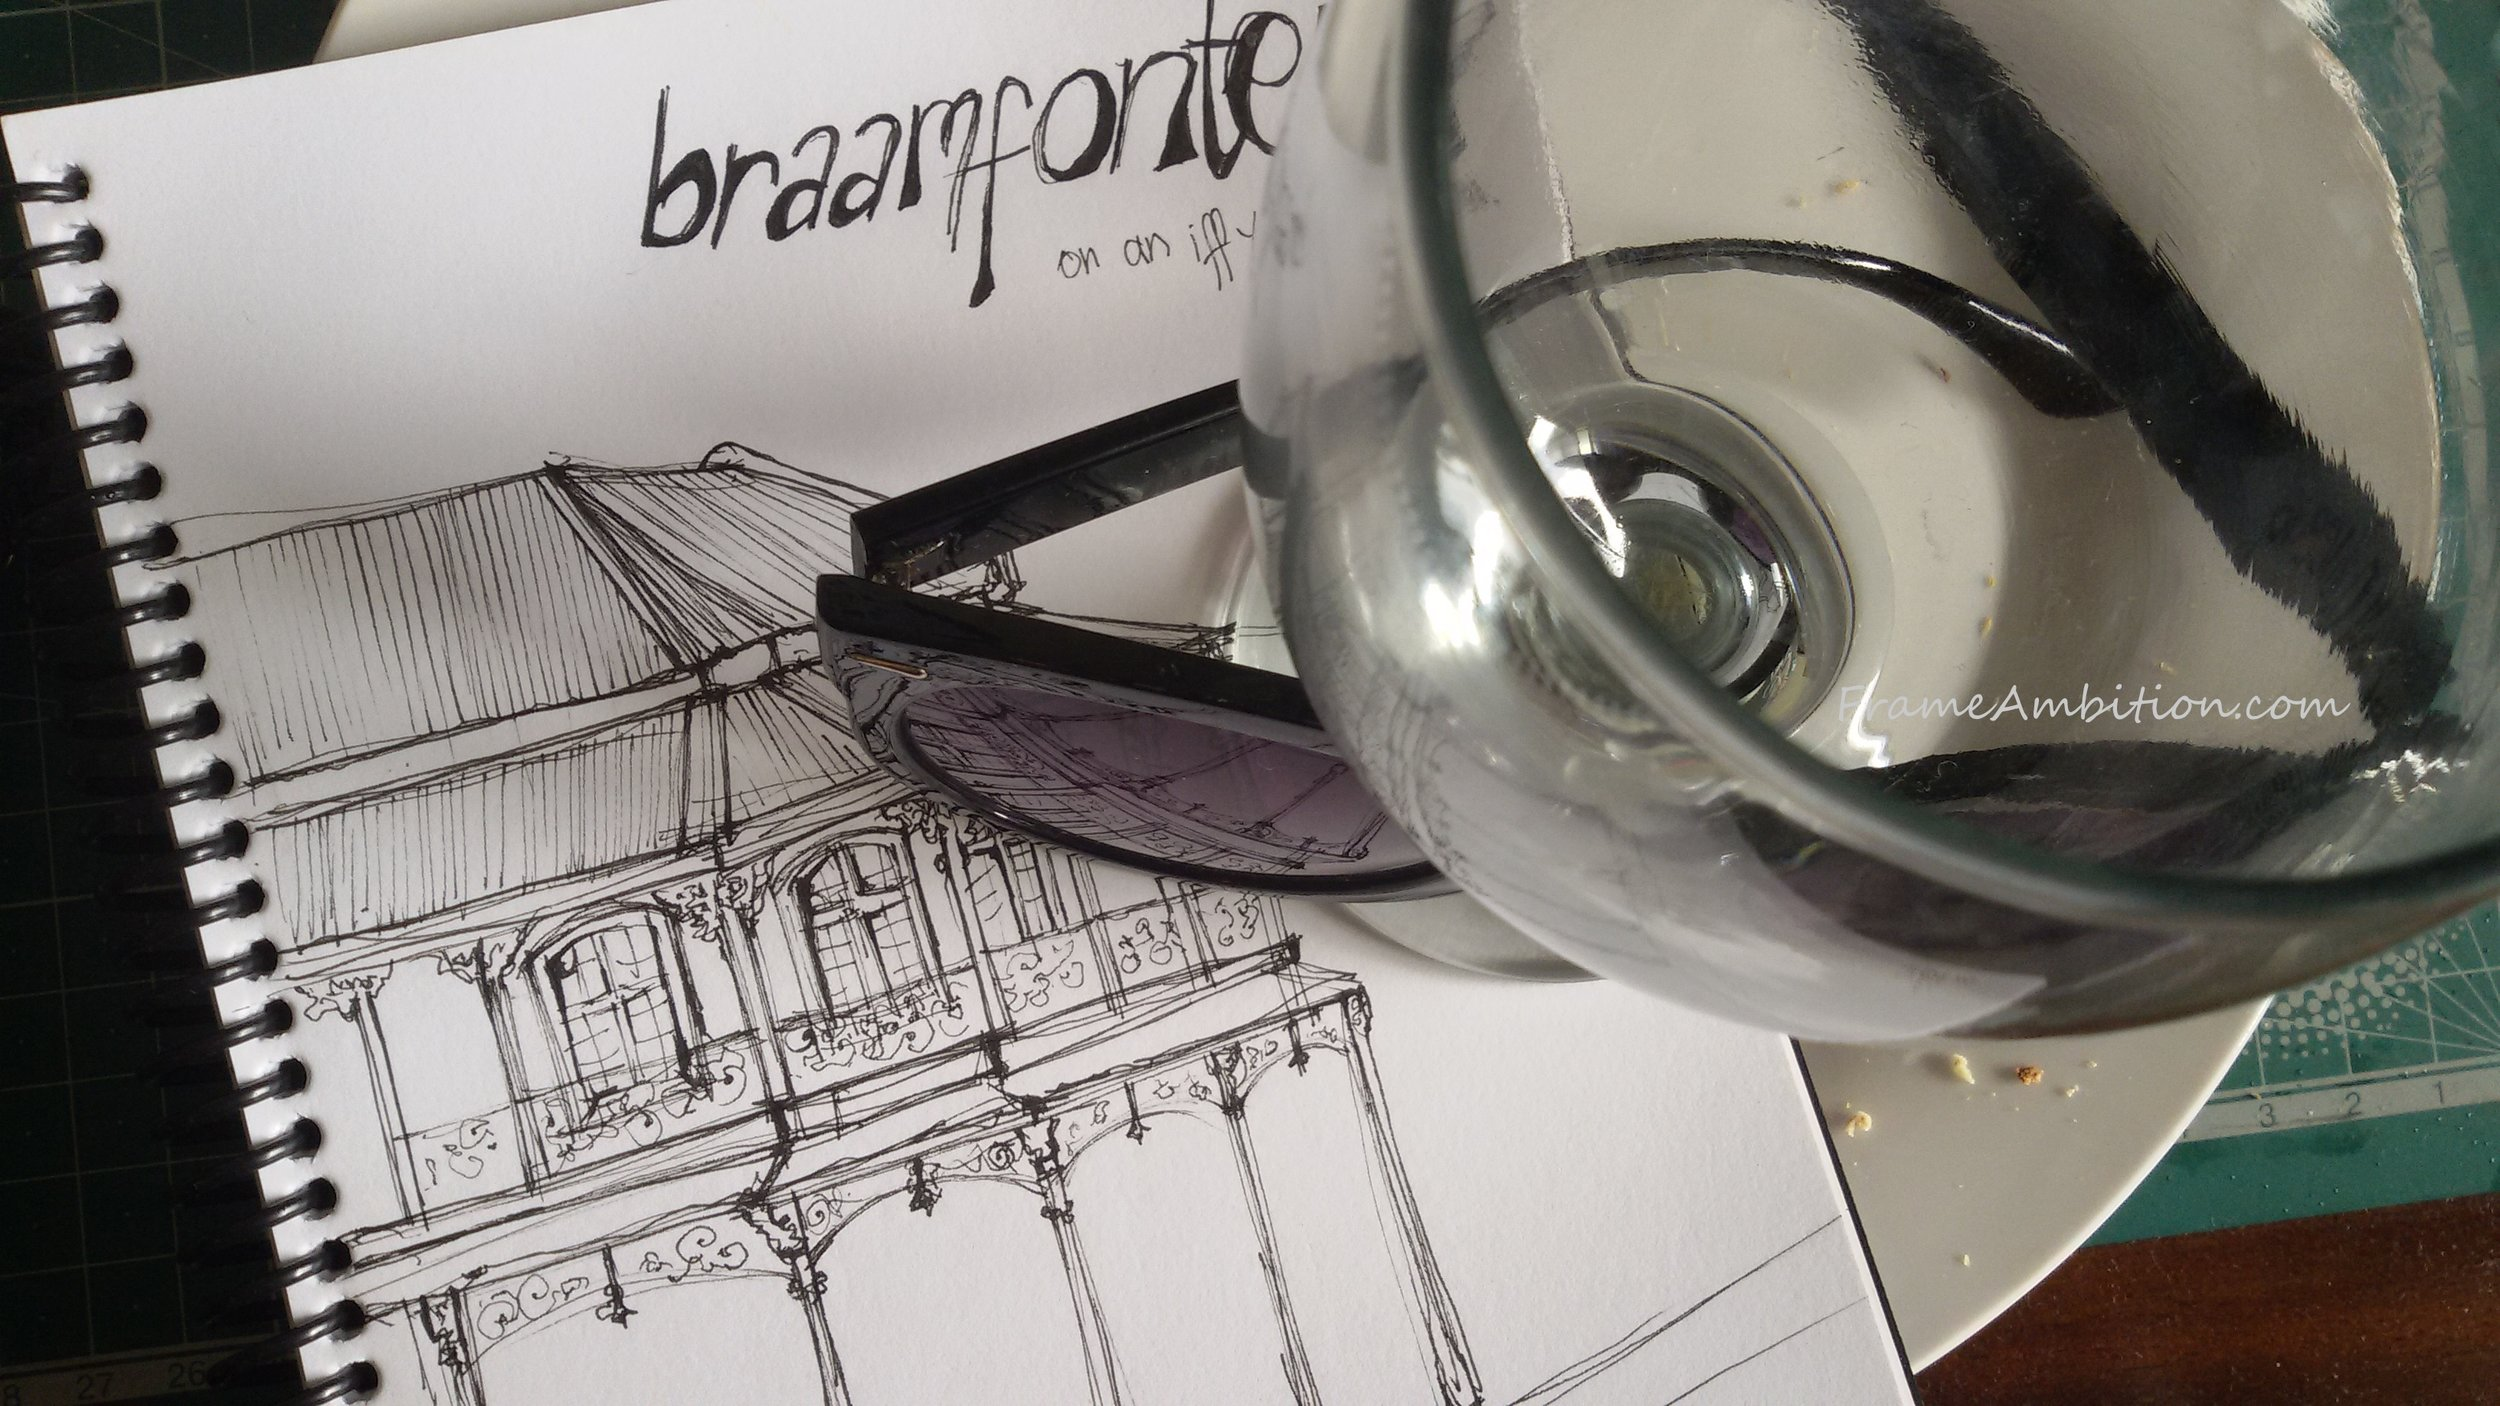 A lunchtime sketch of Kitchener's, Braamfontein